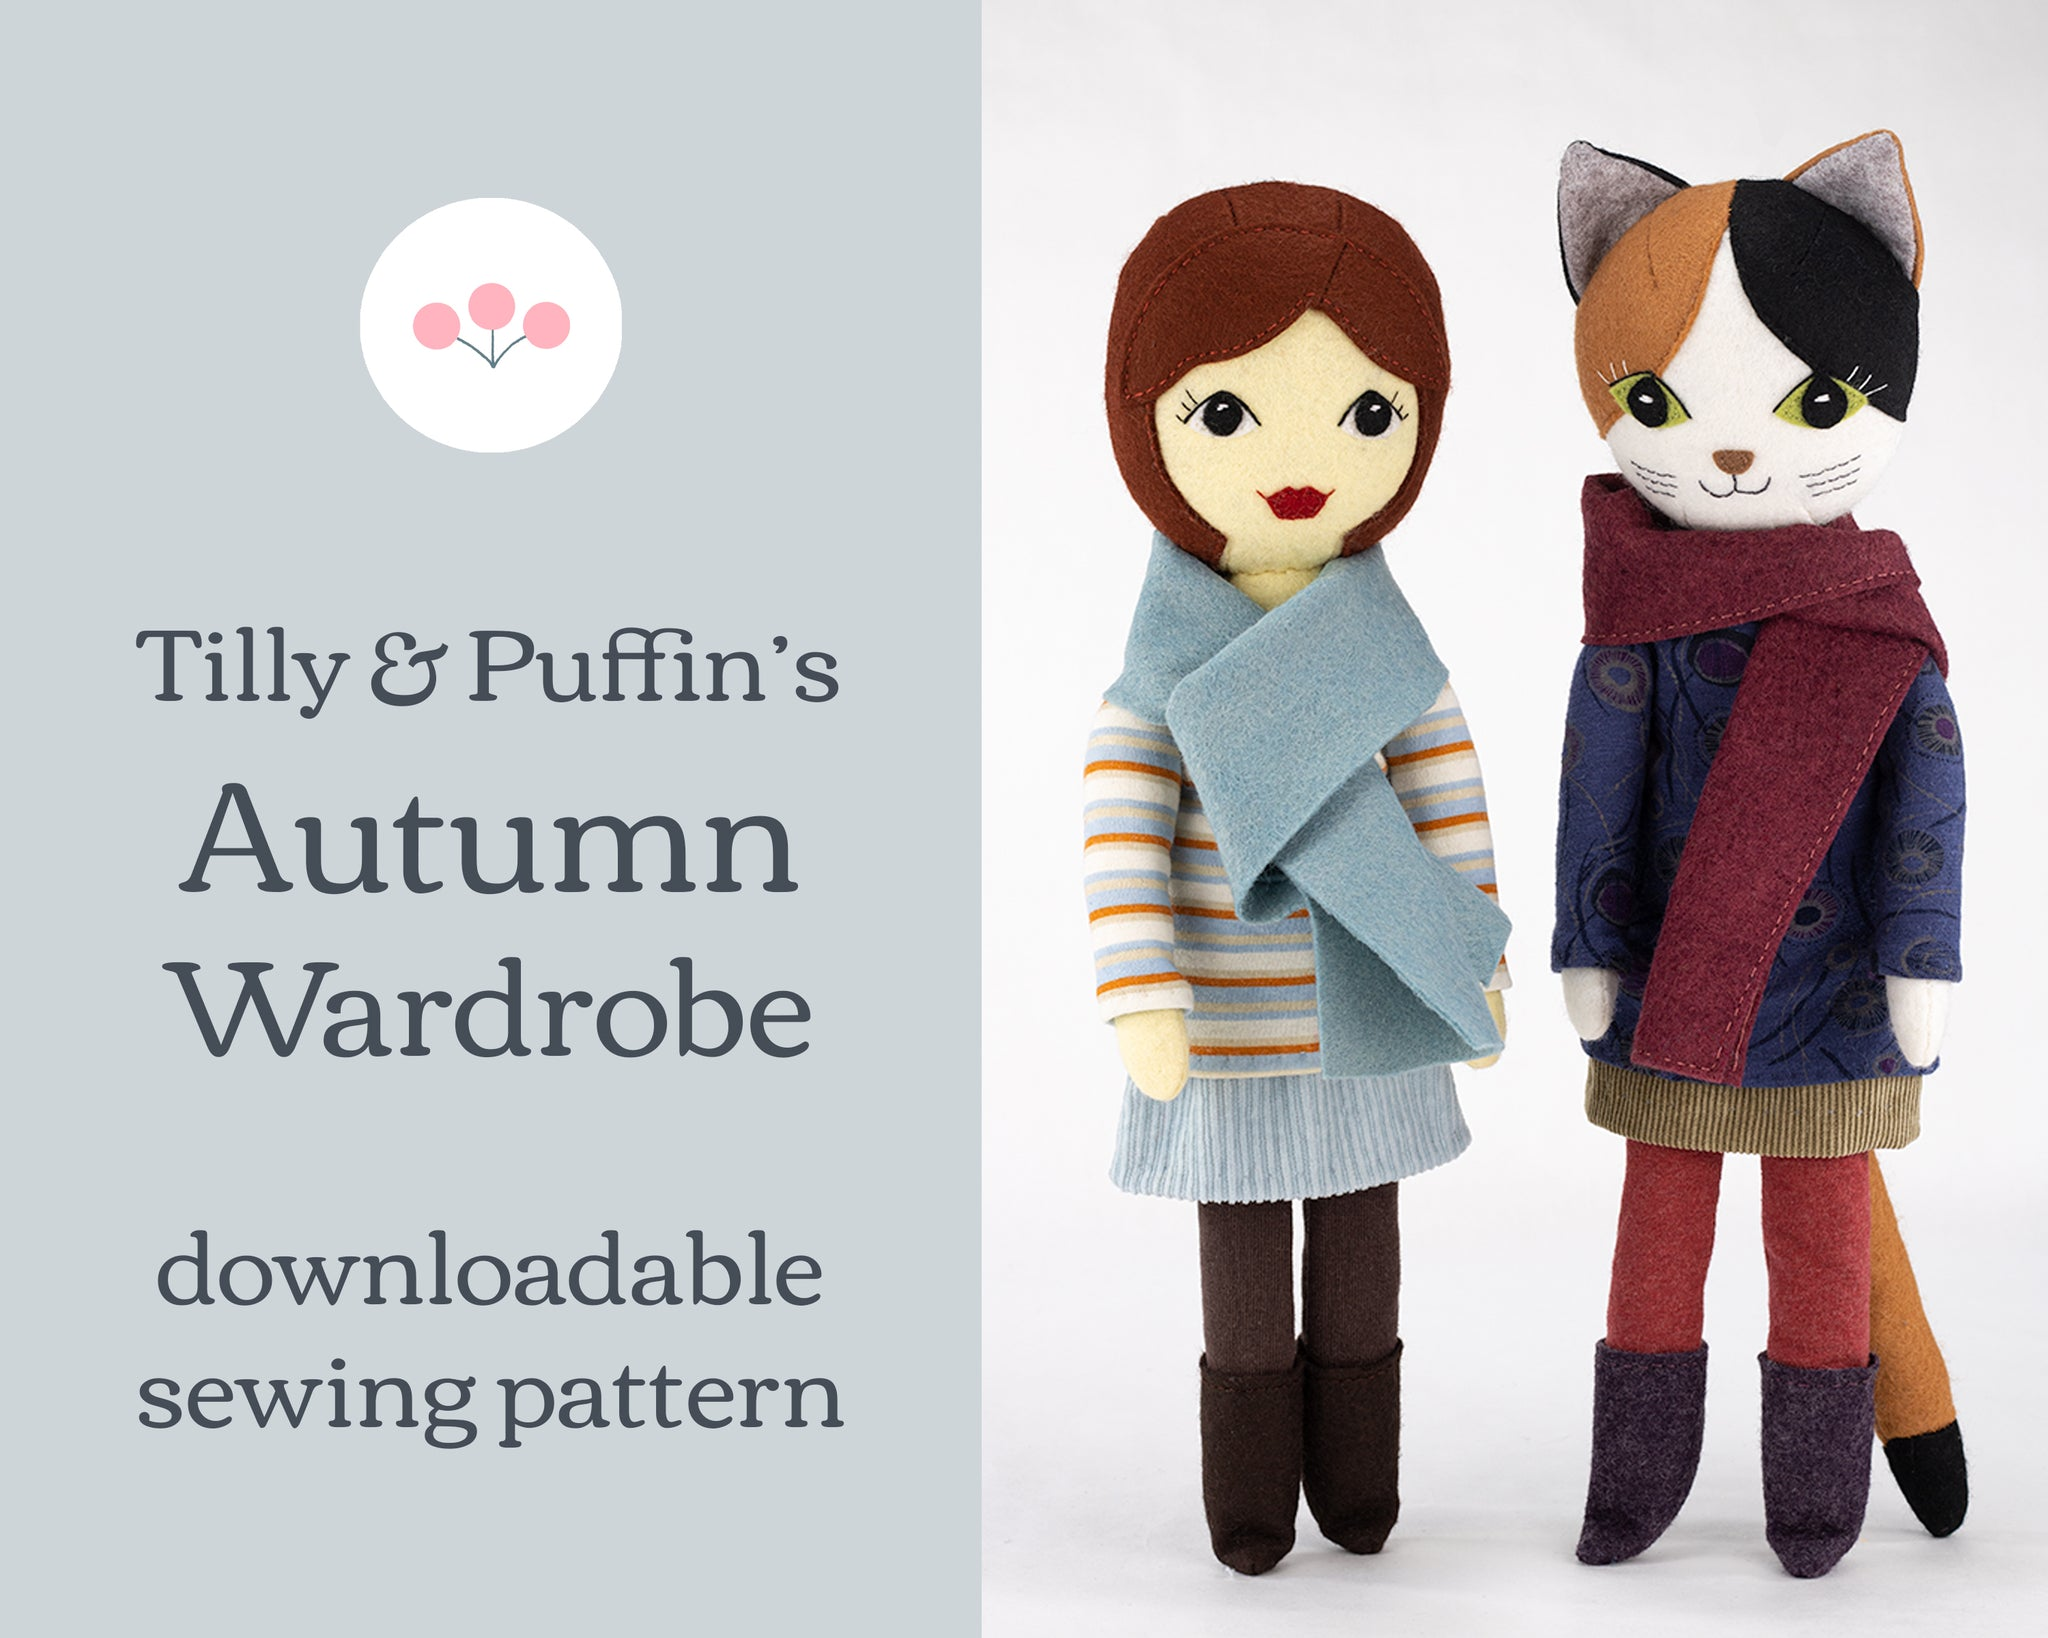 Tilly & Puffin's Autumn Wardrobe Clothes Pattern